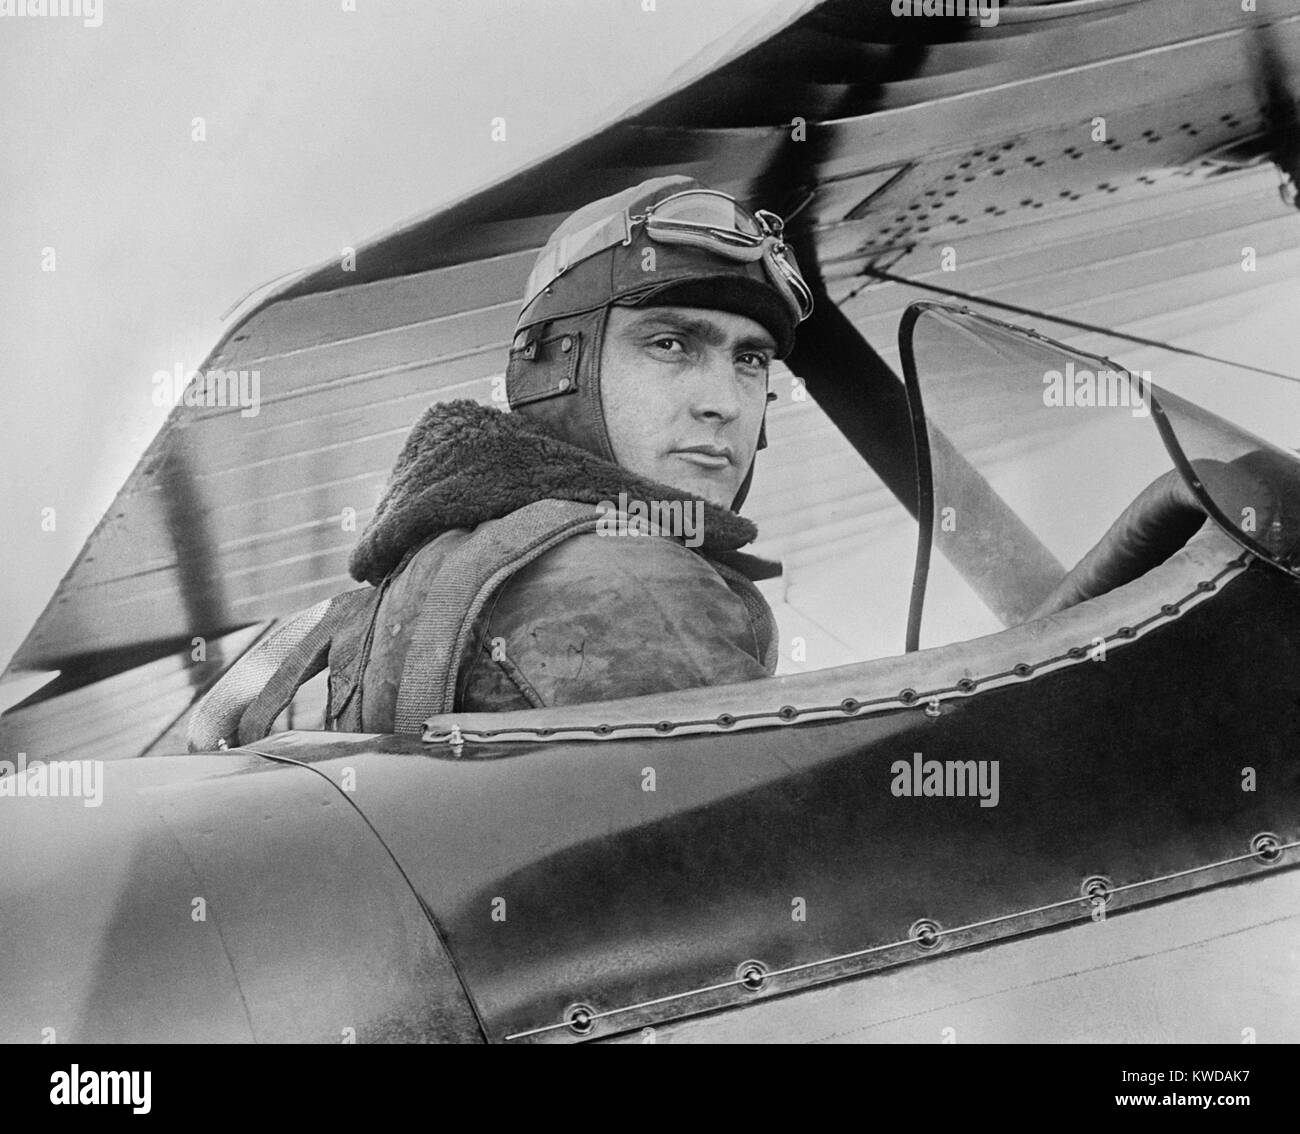 Captain Ira C. Eaker, at Bolling Field, Washington, D.C. Feb. 16, 1929. He was a military aviation pioneer between Stock Photo